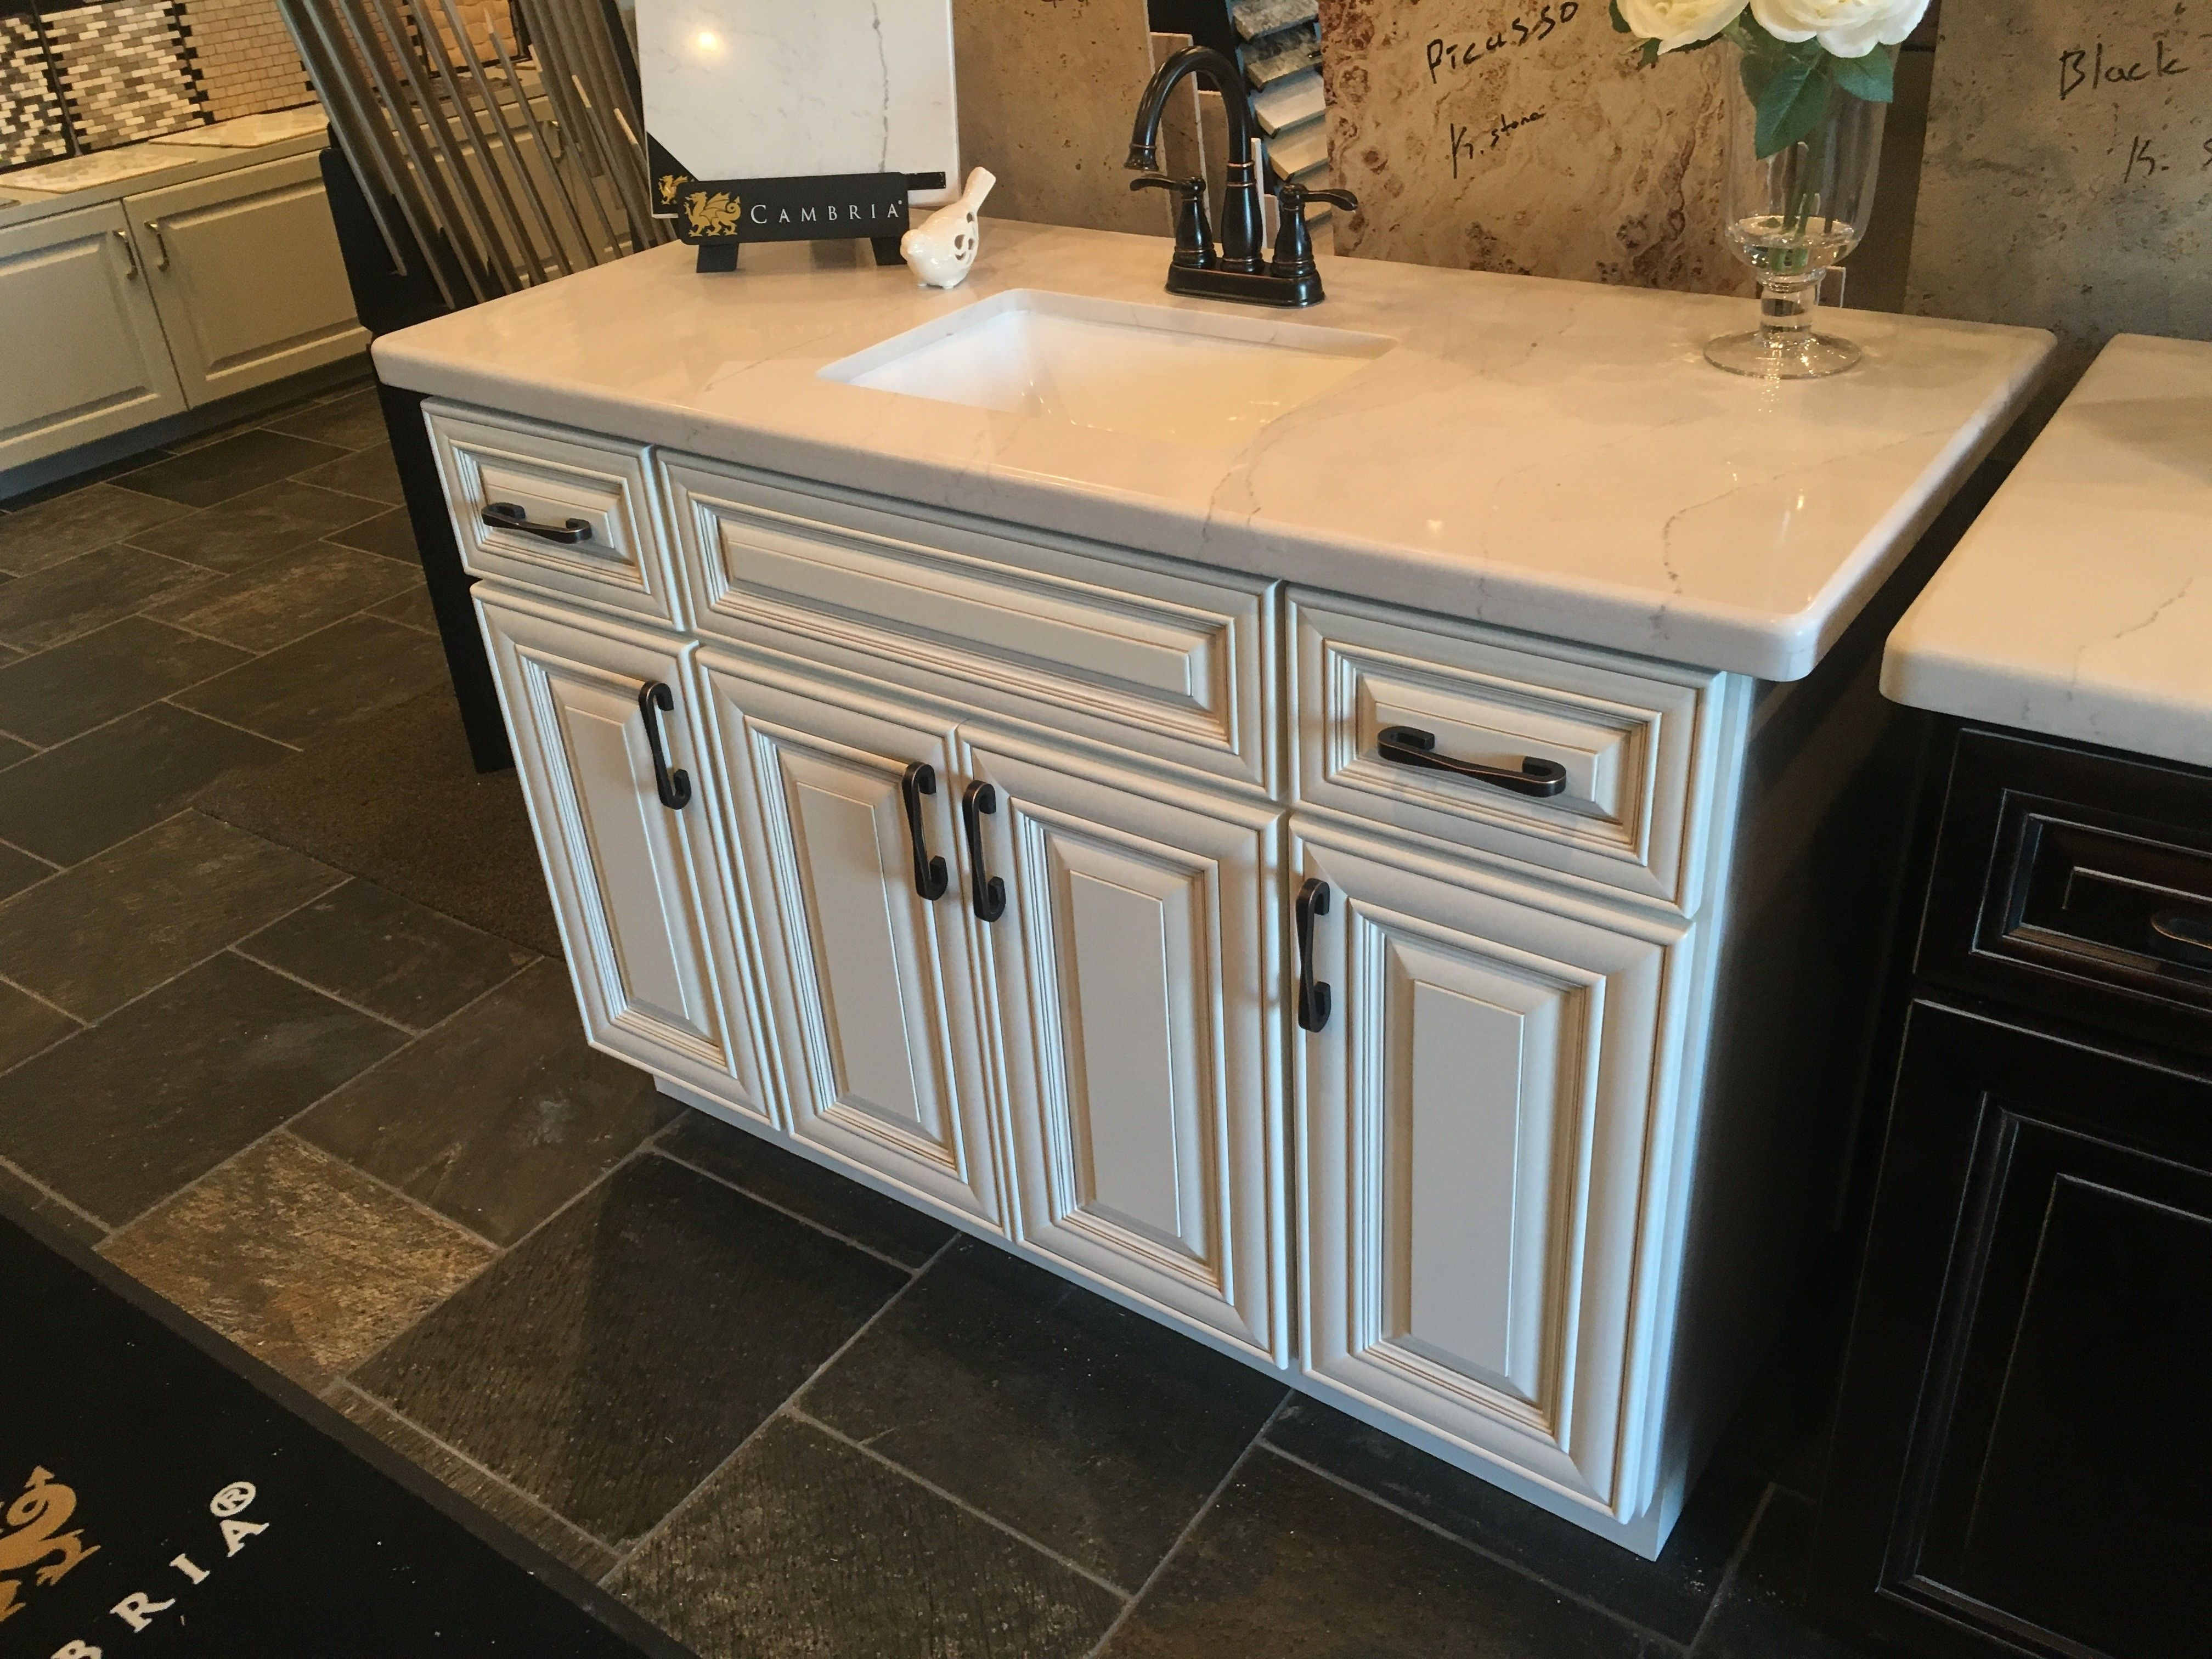 Vintage Oatmeal Raised Panel Cabinetry W Quartz Countertops Bronze Hardware Pulls Kitchen Cabinets And Granite Kitchen Cabinets Kitchen Remodel